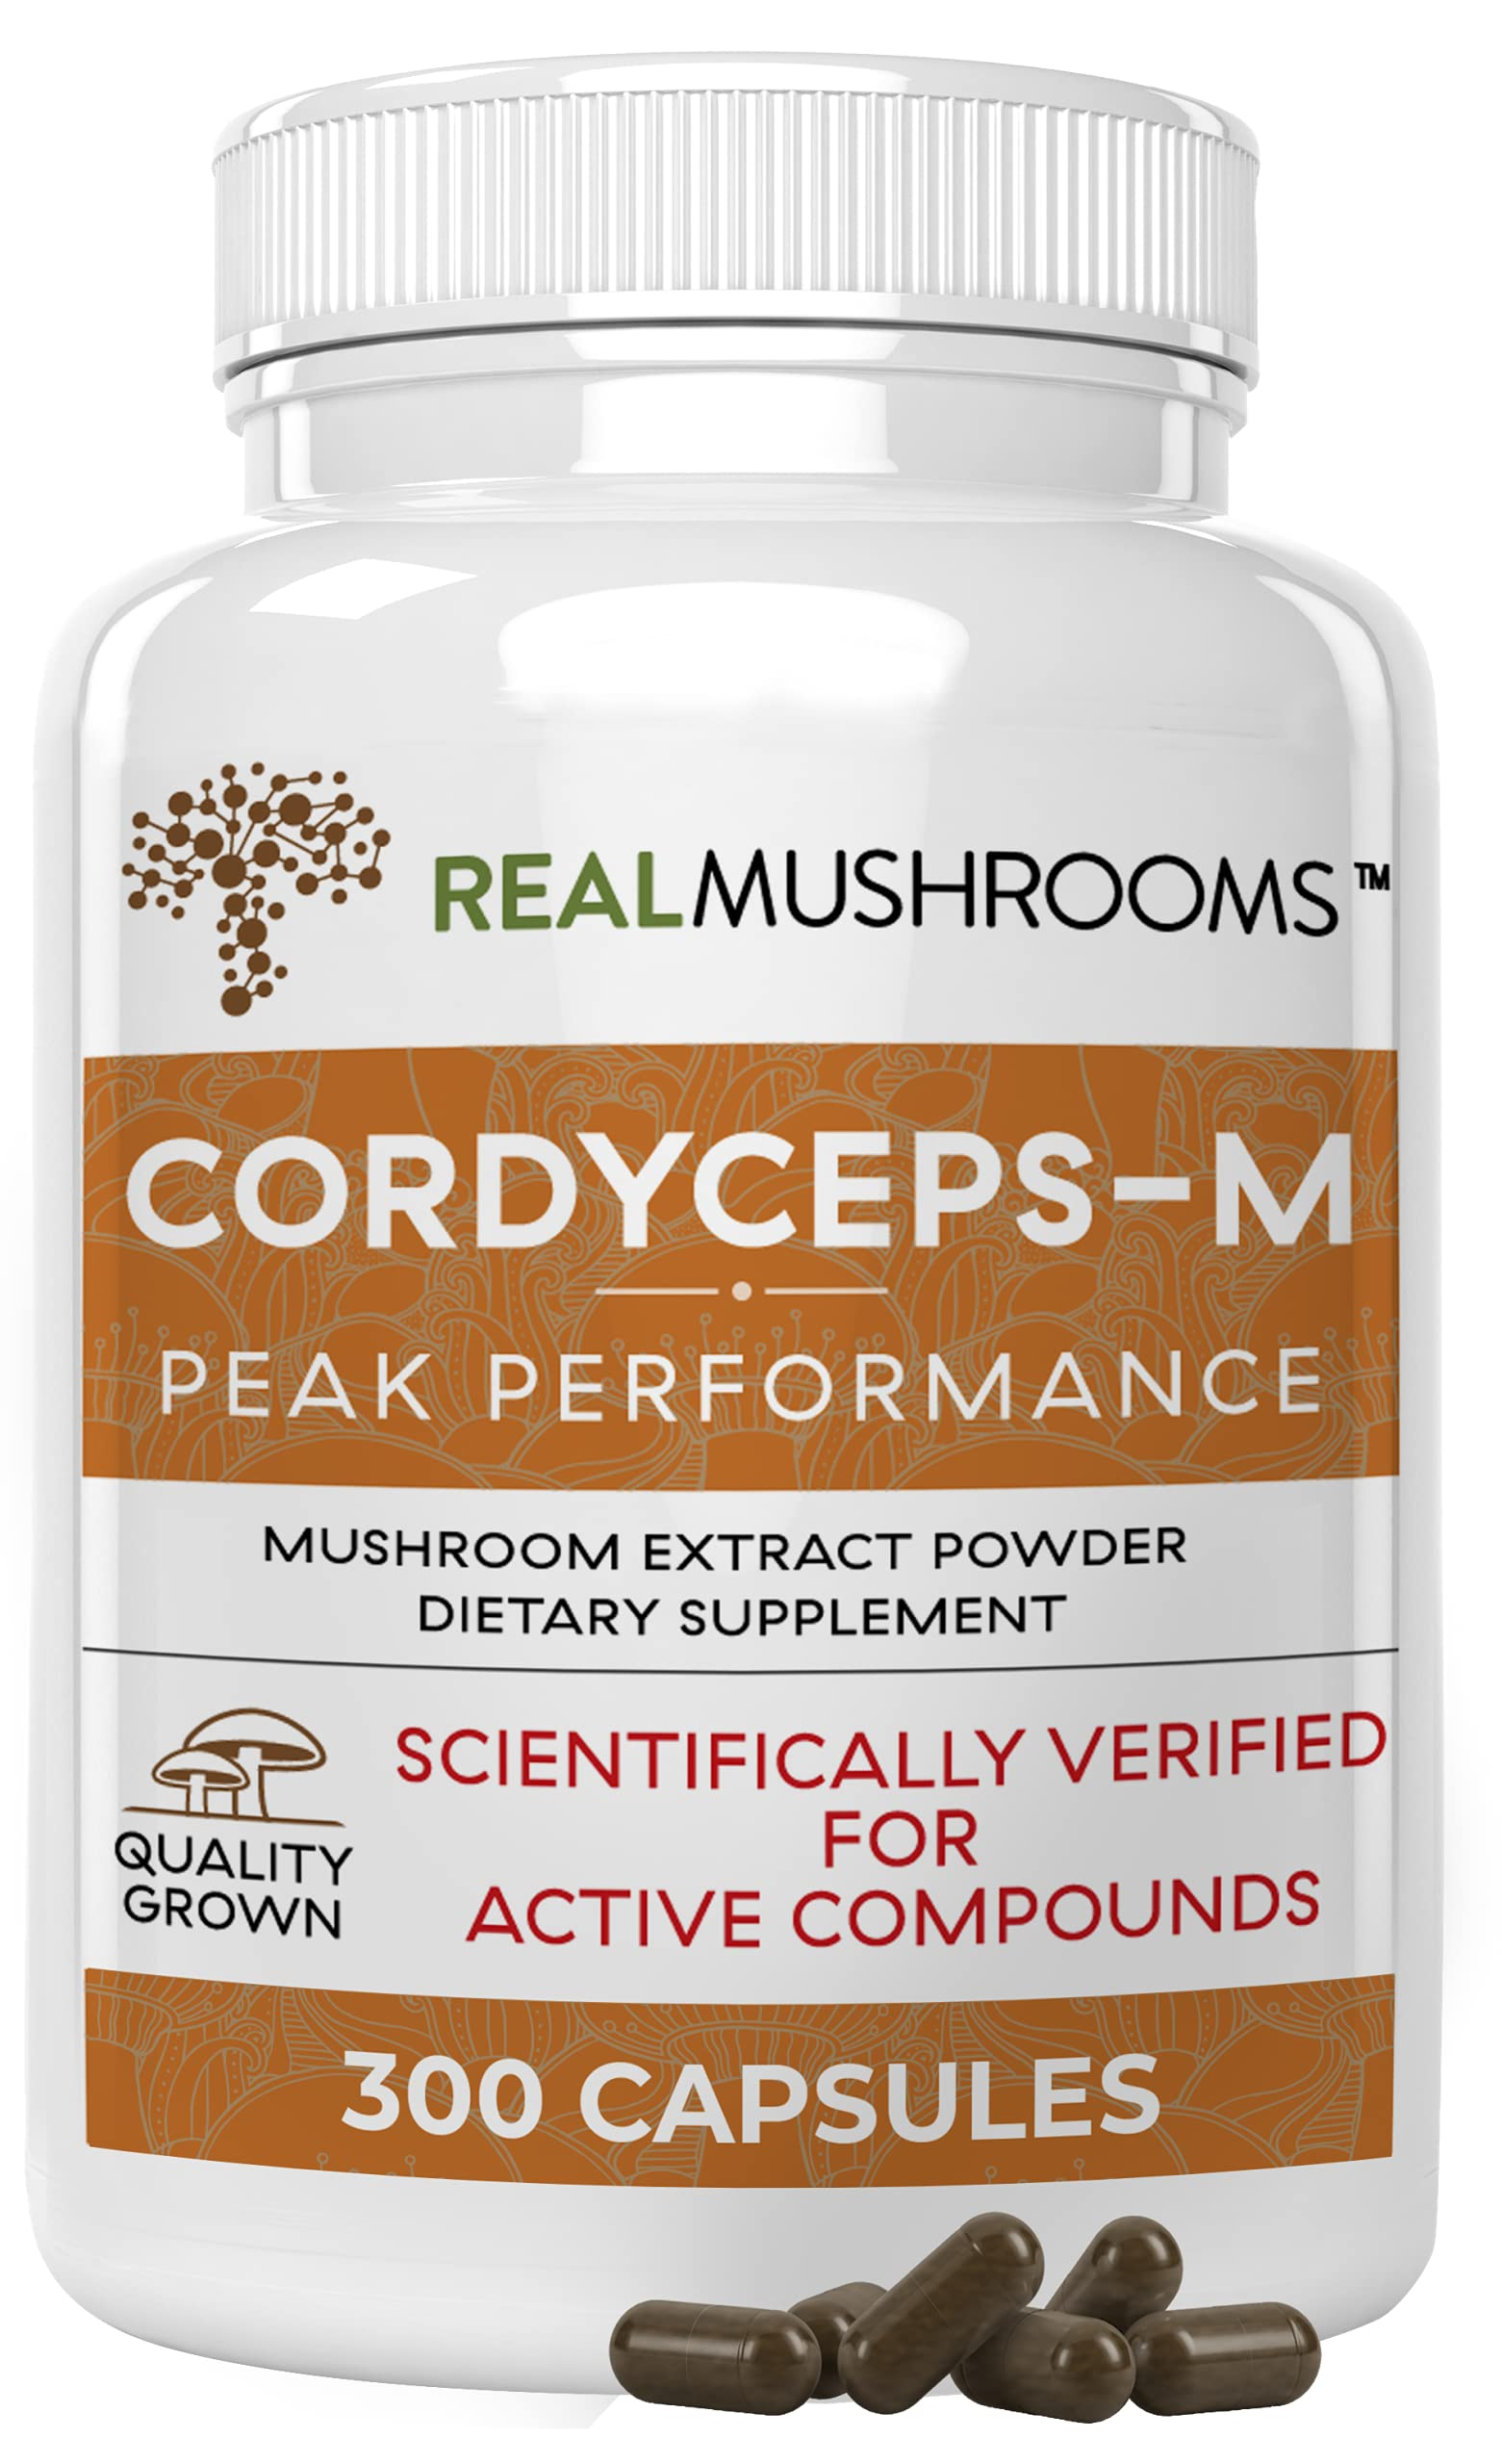 Cordyceps-M Peak Performance Supplement for Energy, Stamina, Endurance (300ct) Vegan Cordyceps-M Supplement for Immune Support, Non-GMO, Verified Levels of Beta-Glucans (150 Day Supply)